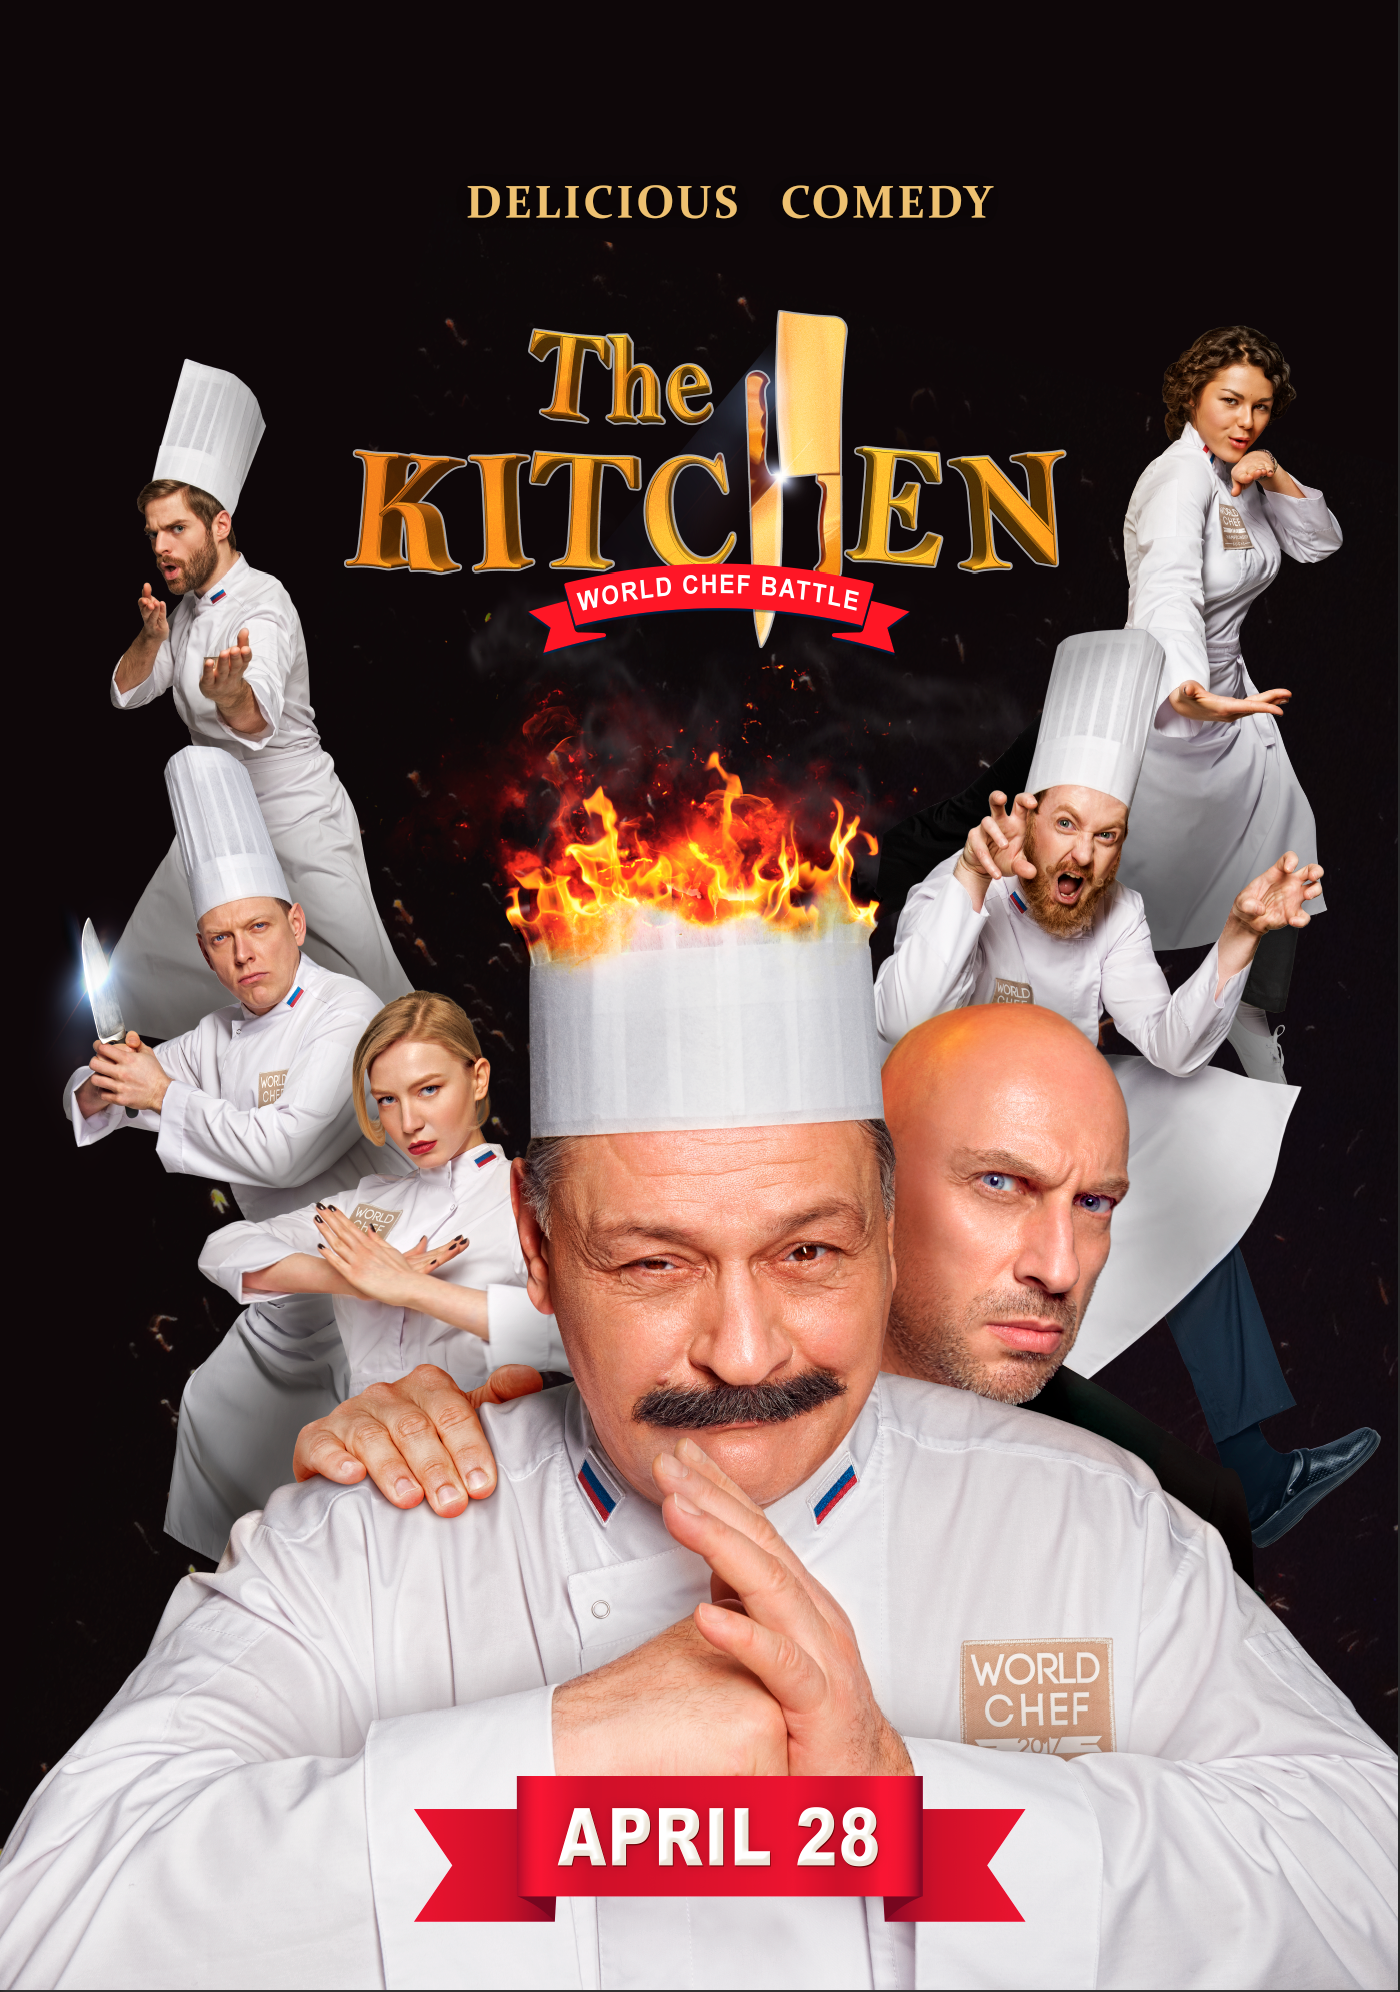 The Kitchen: Wold Chef Battle